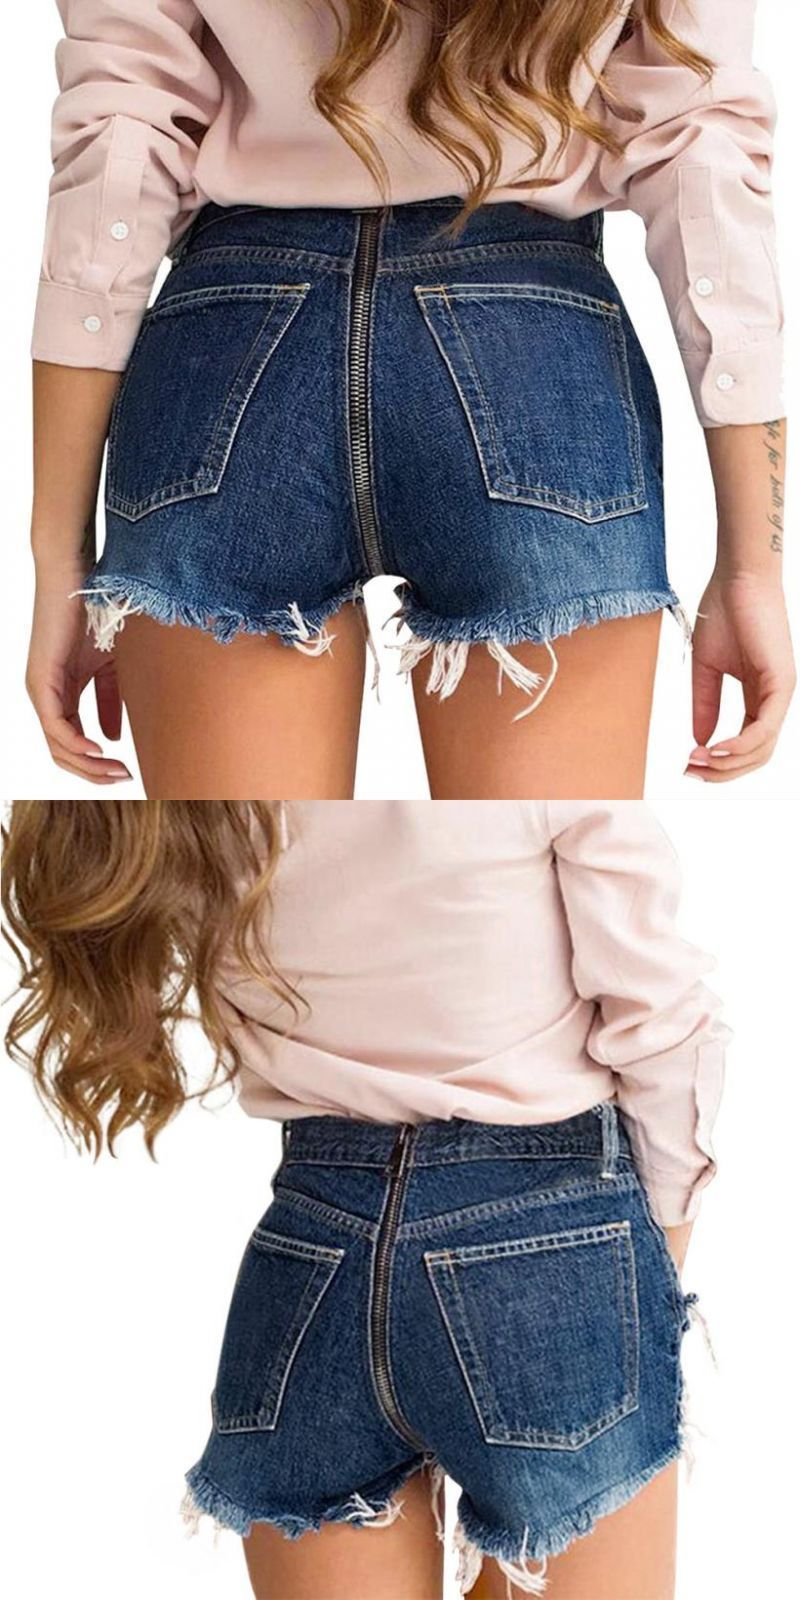 36404dc35d8 Women s back zipper denim shorts pants tassel wide-leg trousers jeans  casual solid high waist all-match summer sexy short pants  women  jeans   none  medium ...